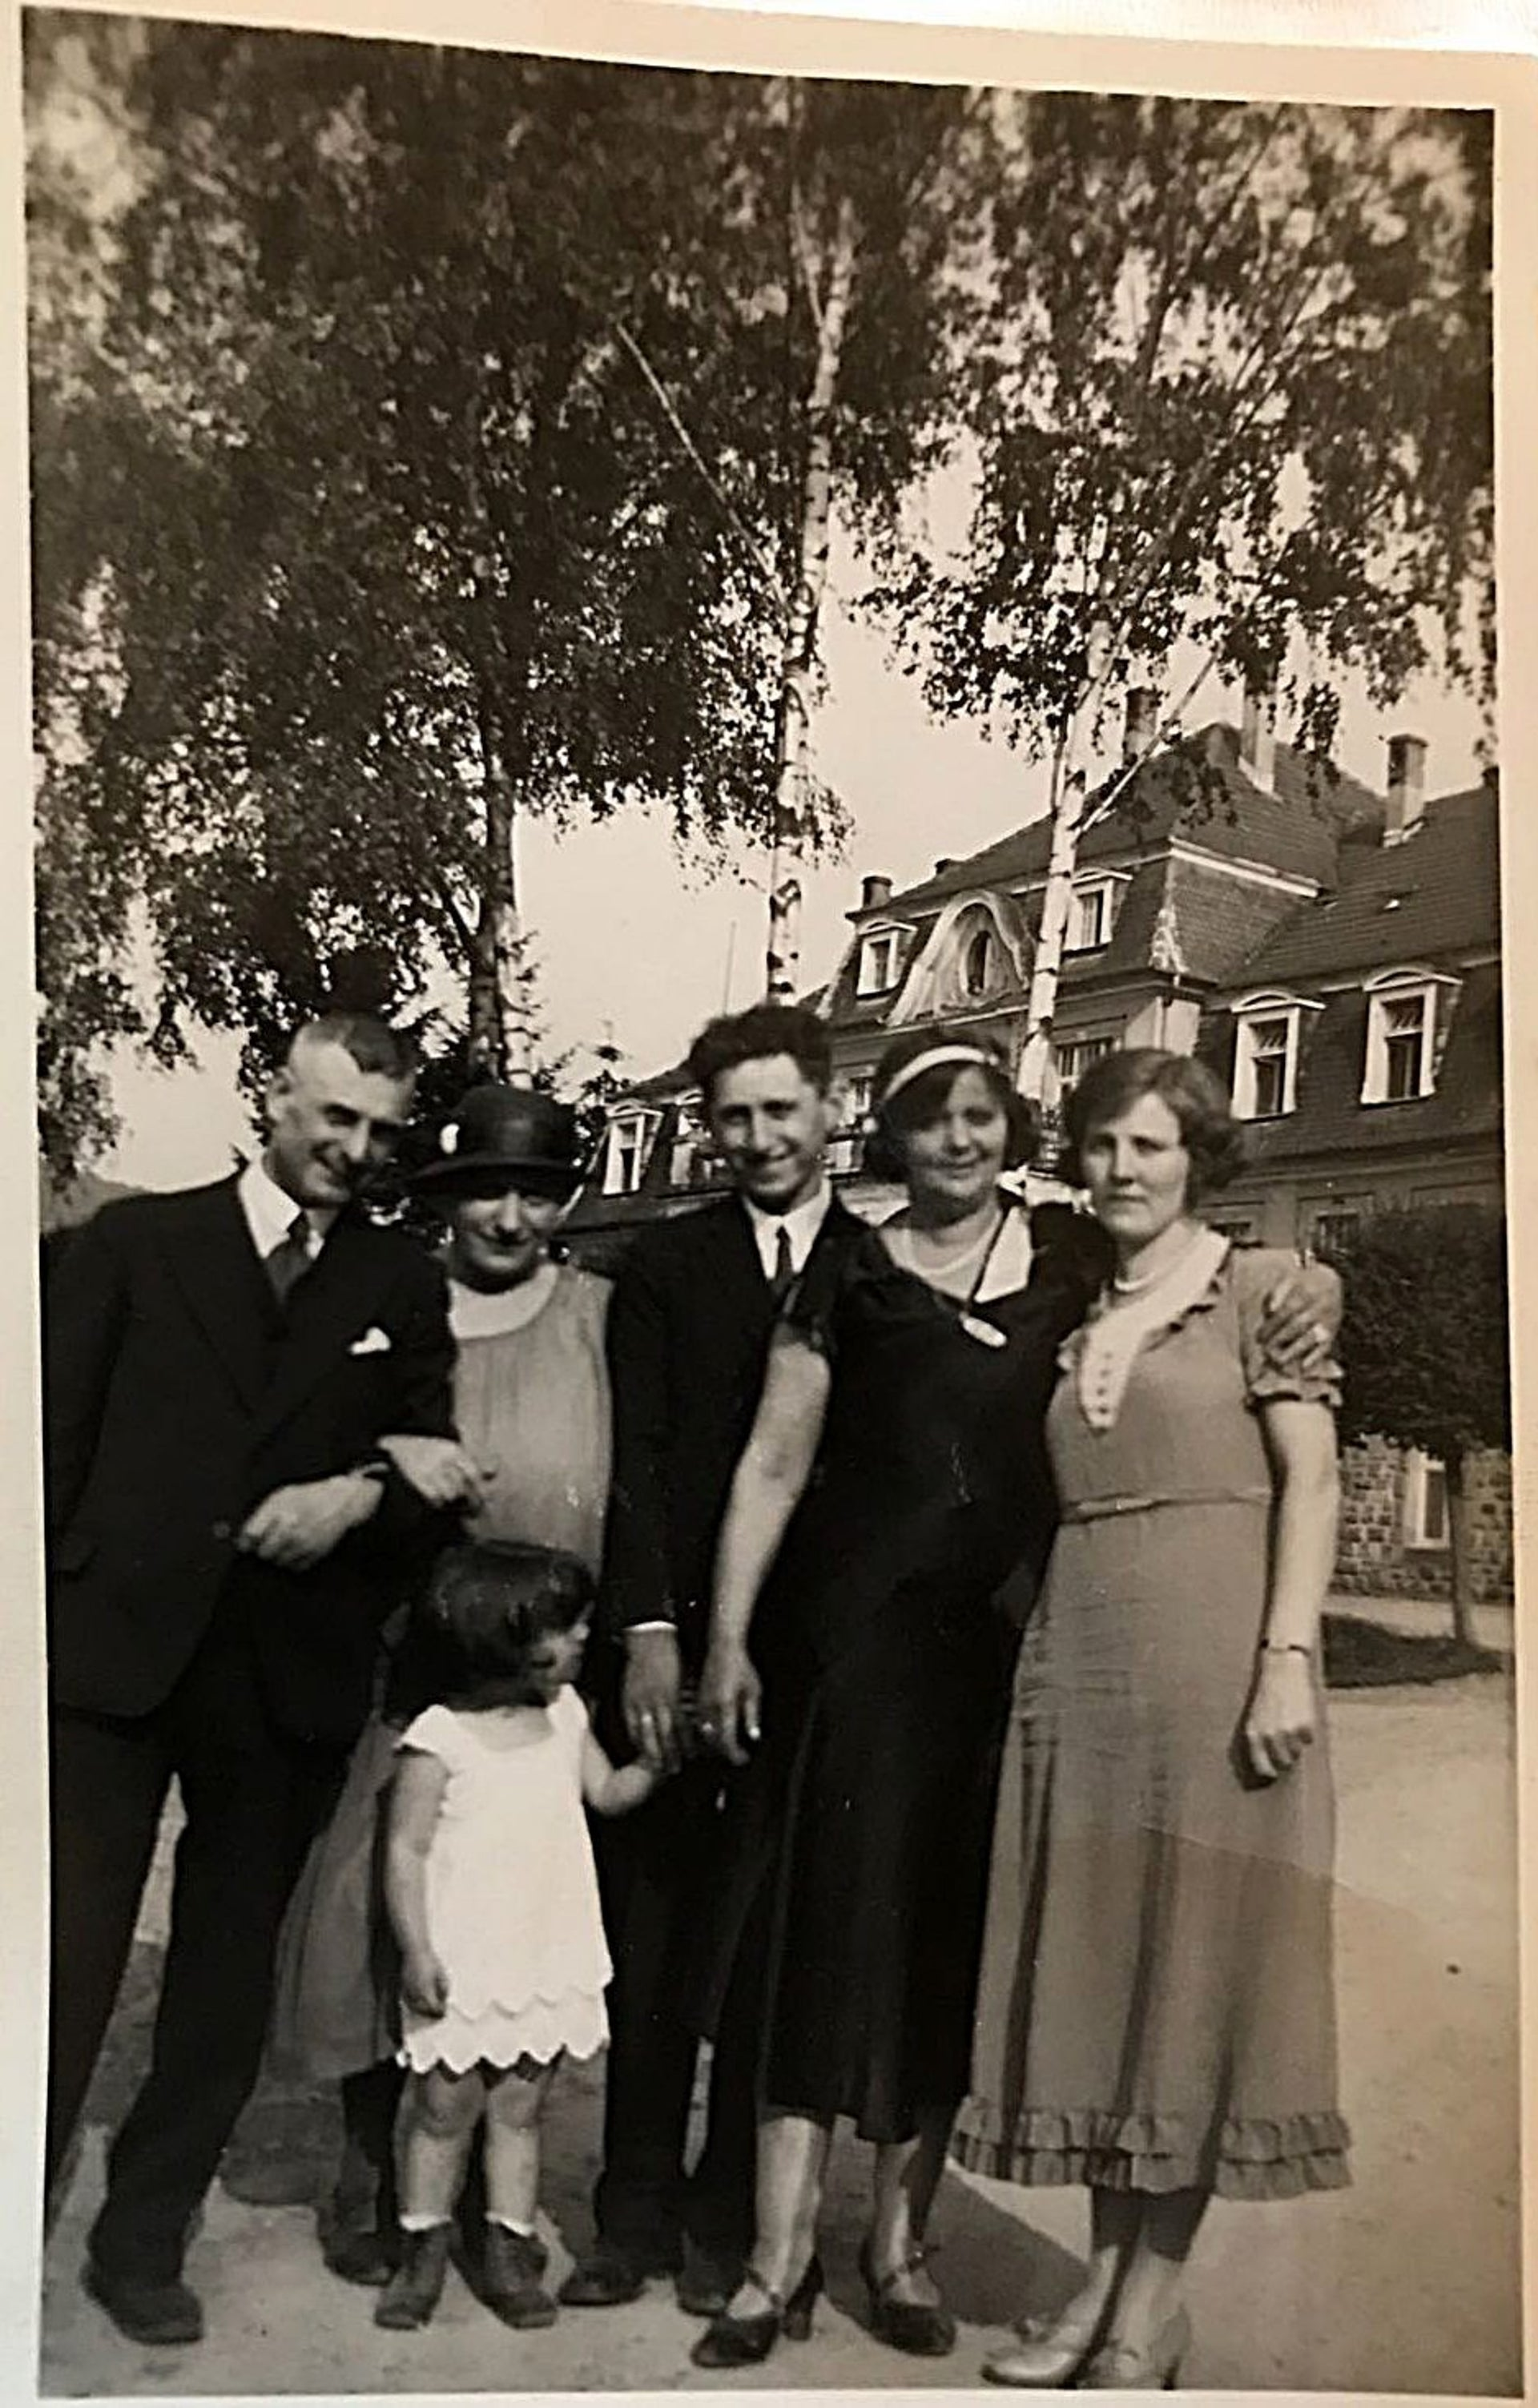 A photograph found in the possession of Karolina Cohn's relatives. Is Karolina the girl in the picture?